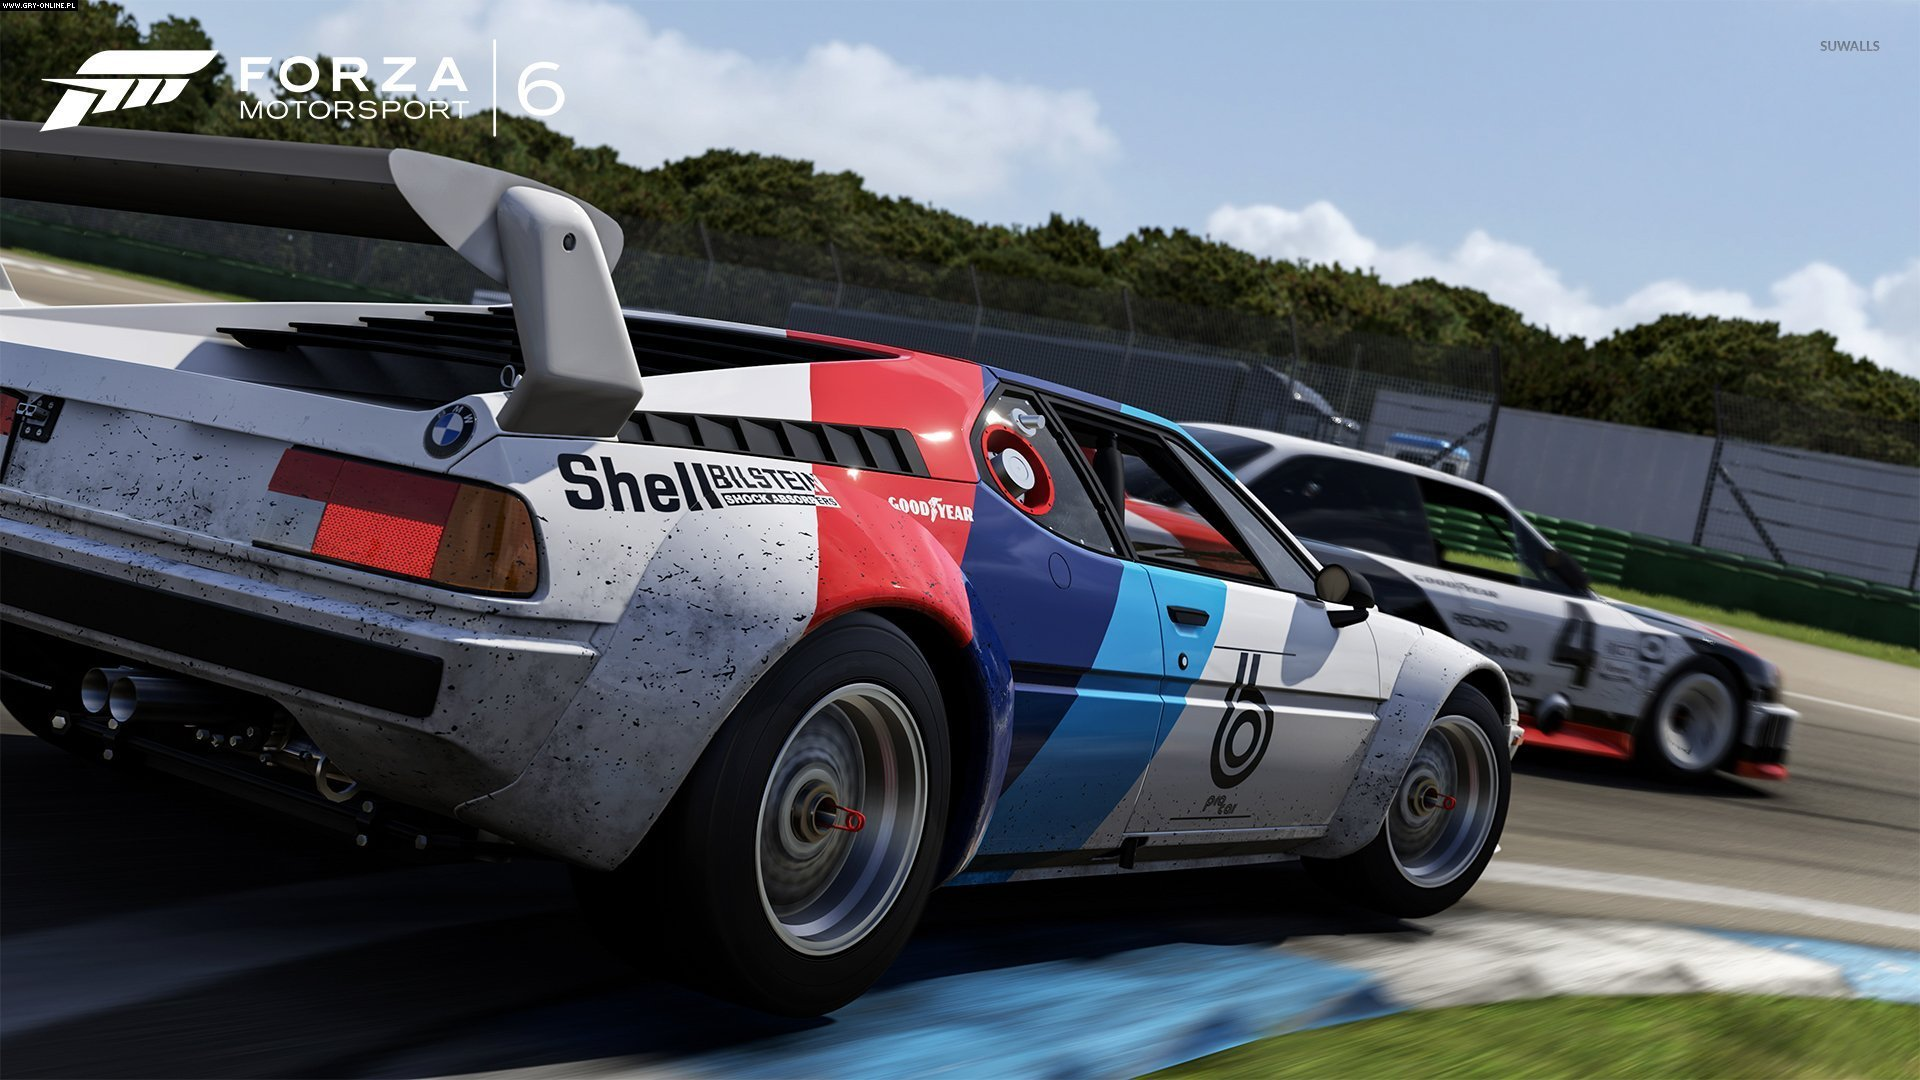 Forza Motorsport 6 7 Wallpaper Game Wallpapers 49035